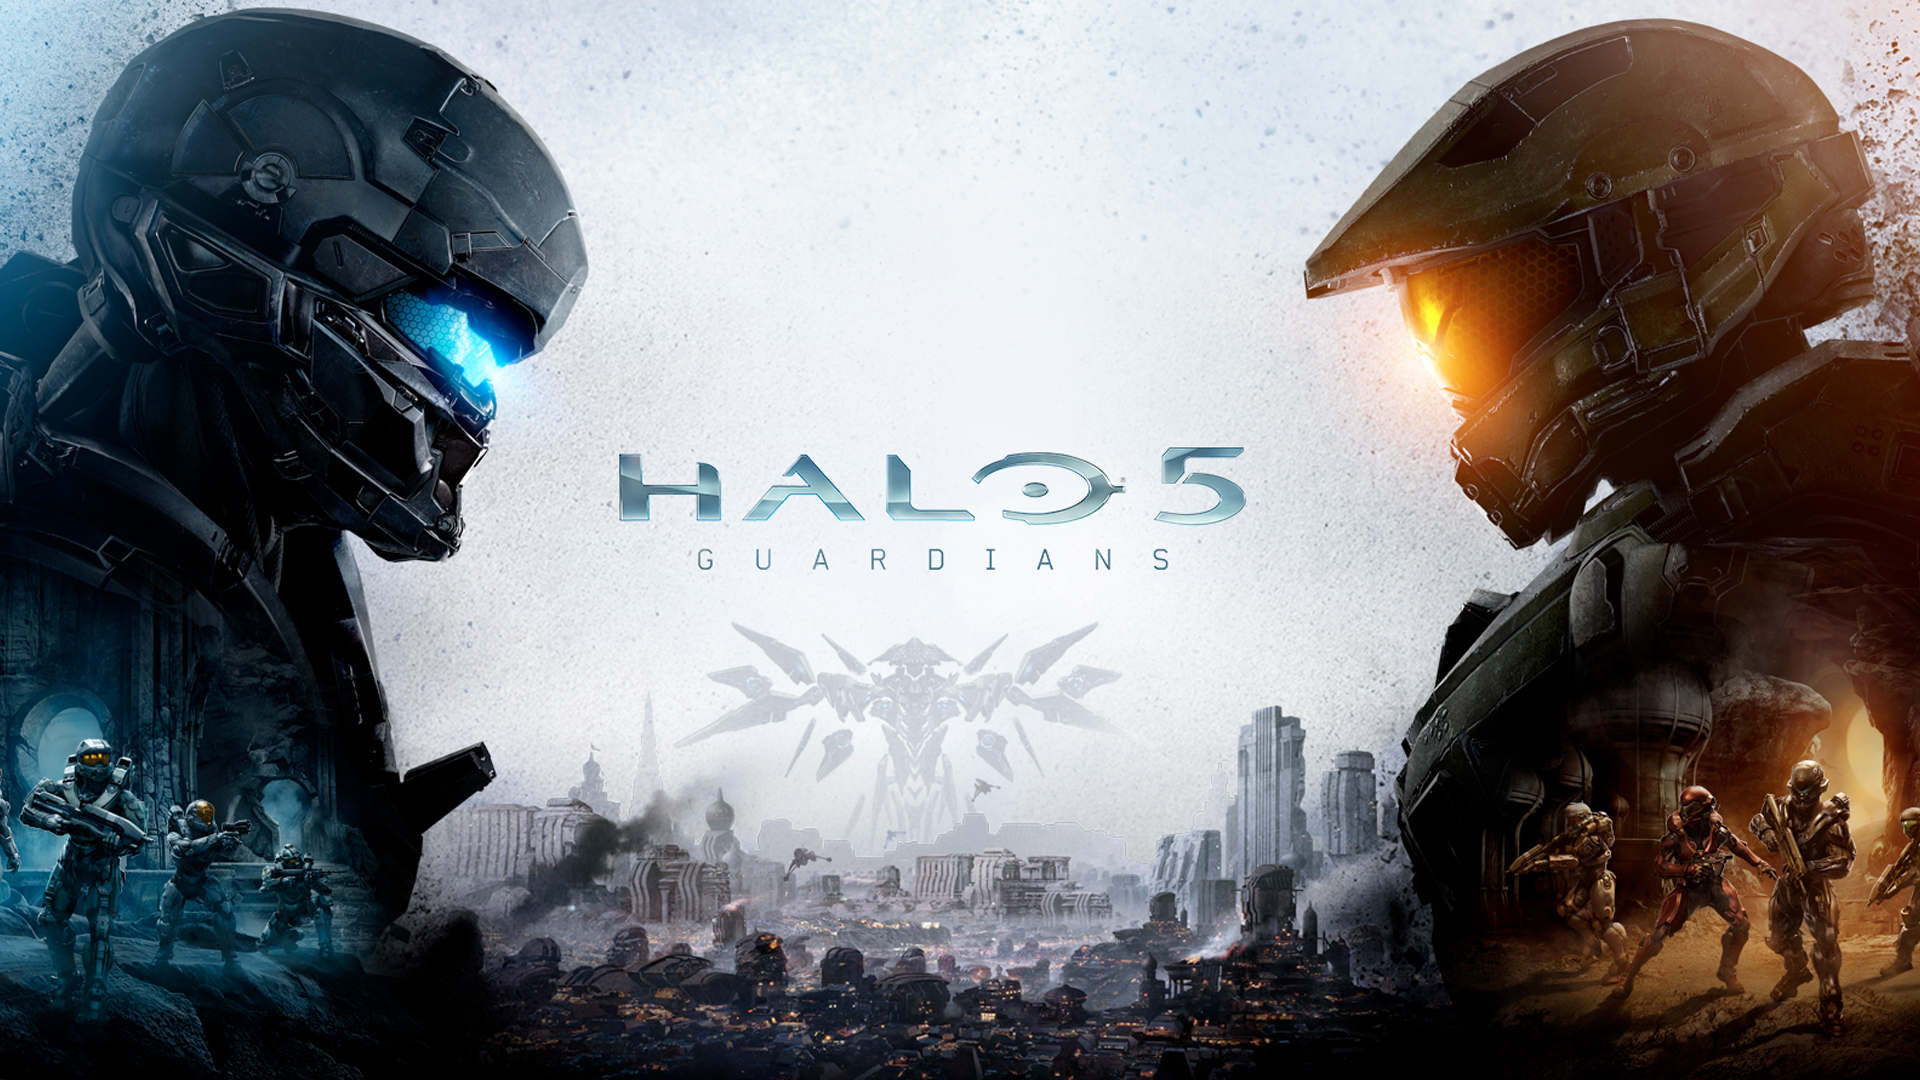 Halo 5: Guardians is not coming to PC at this time 1